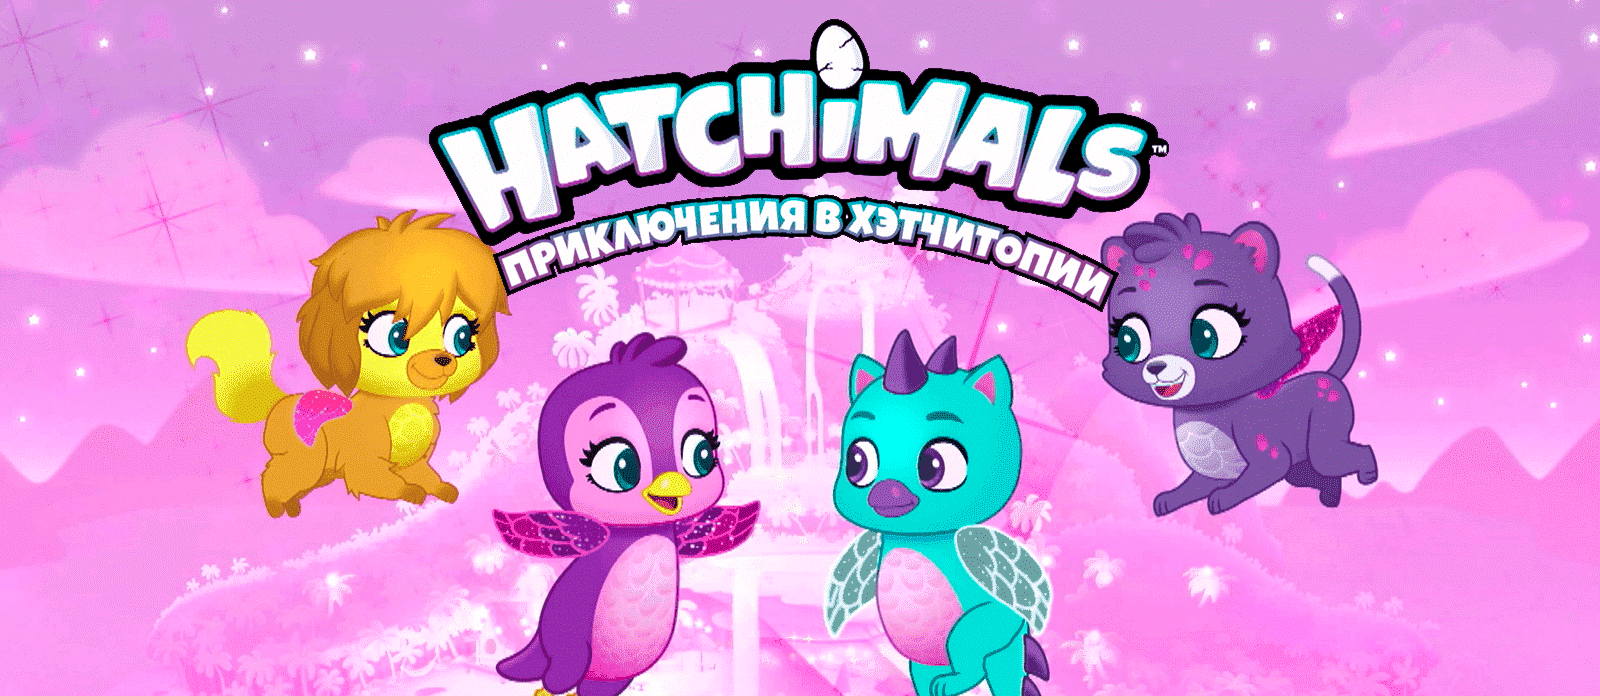 Hatchimals 98468 Хетчималс Пазл 46 элементов в яйце